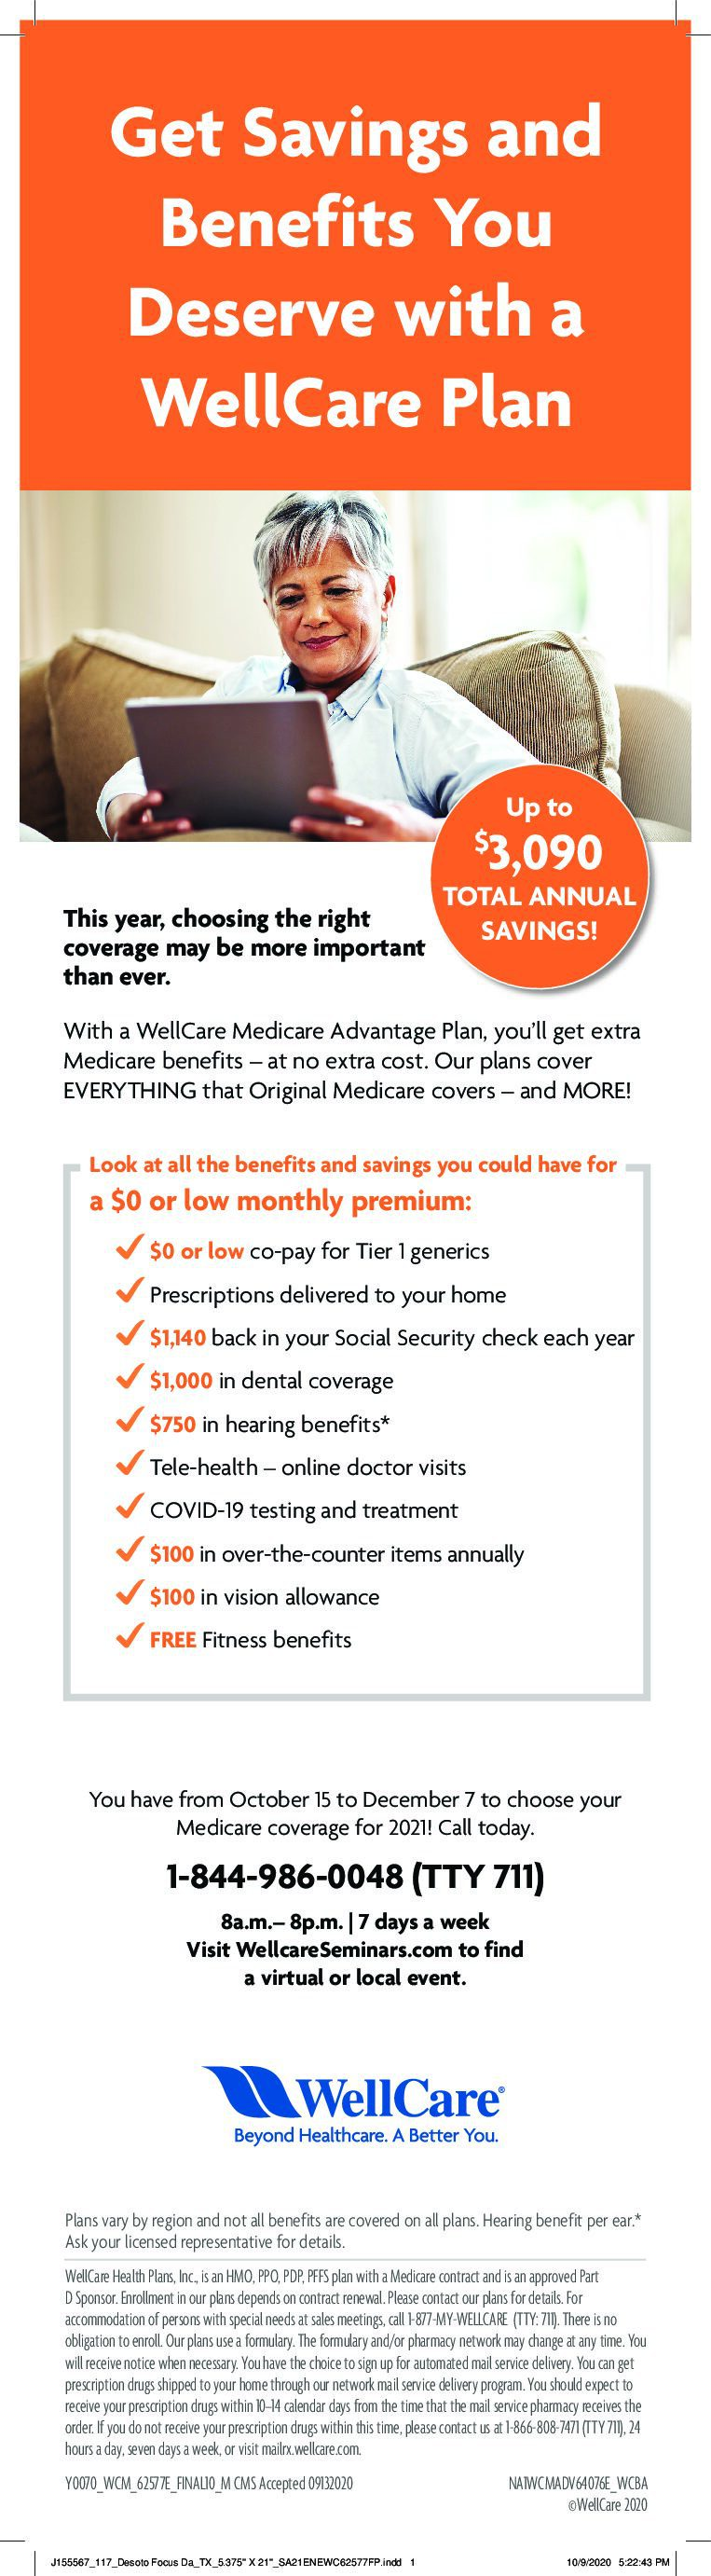 How to Select a Medicare Plan for Your Health Needs